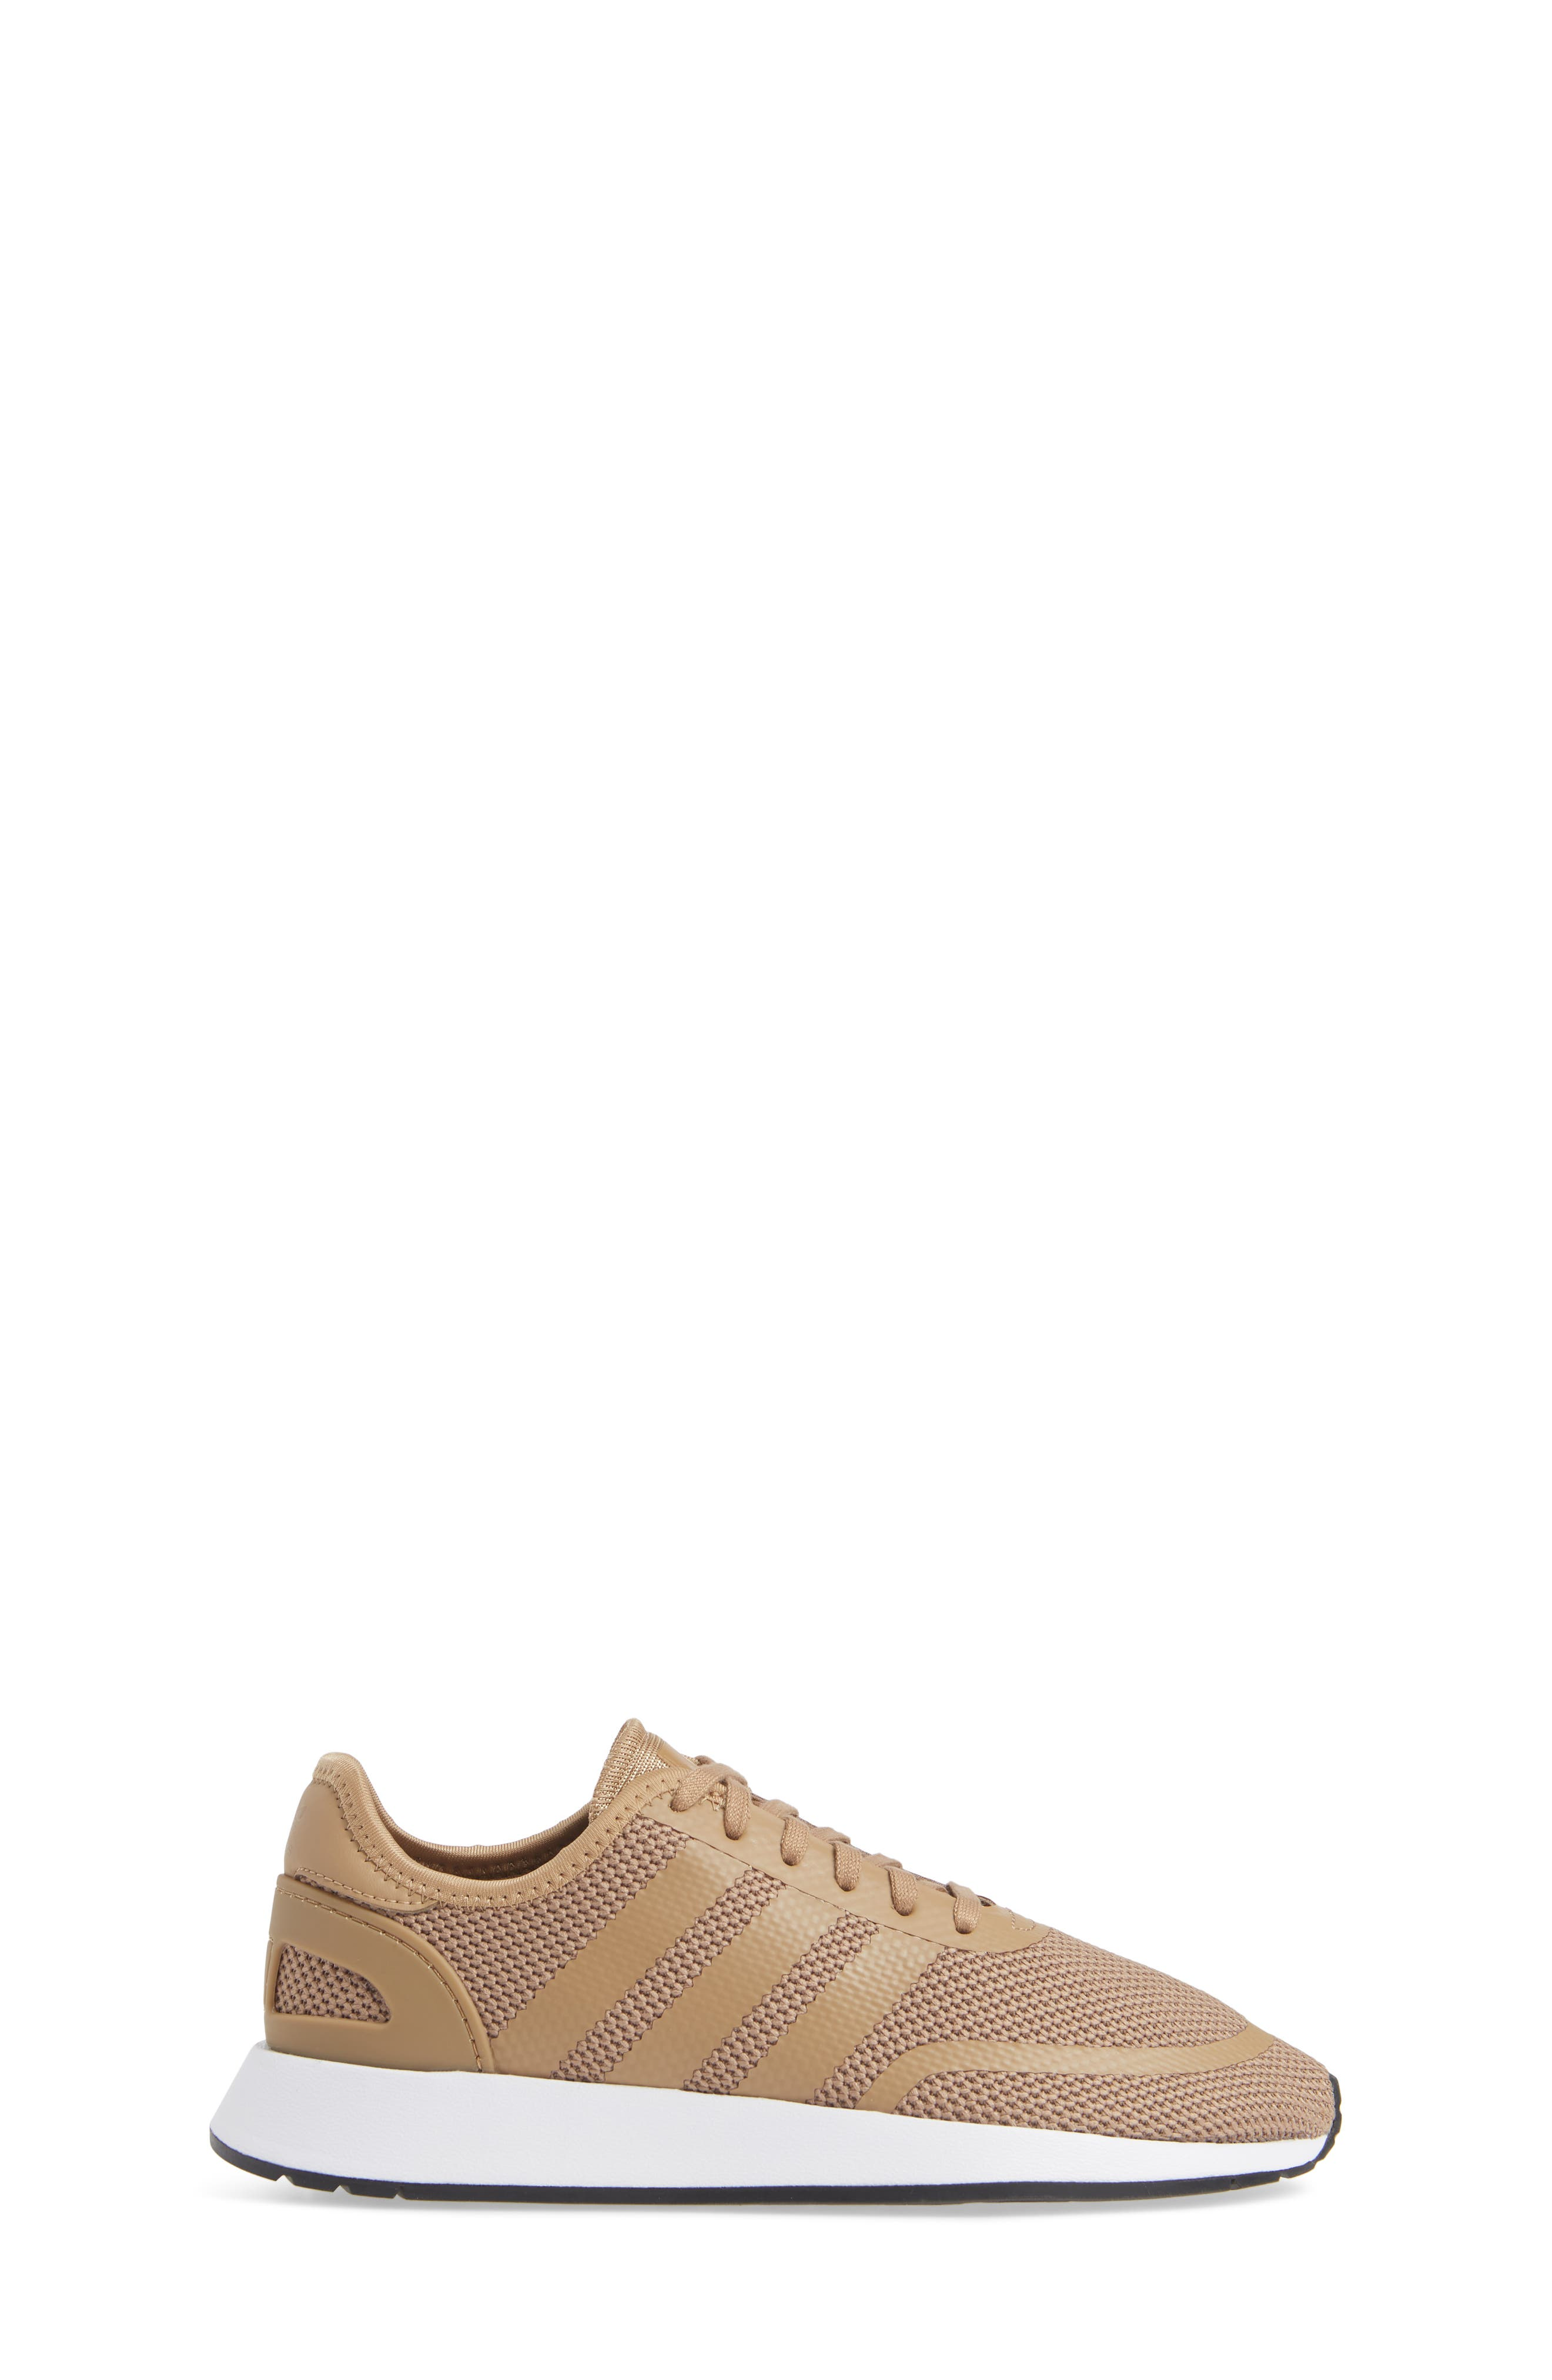 N-5923 Sneaker,                             Alternate thumbnail 17, color,